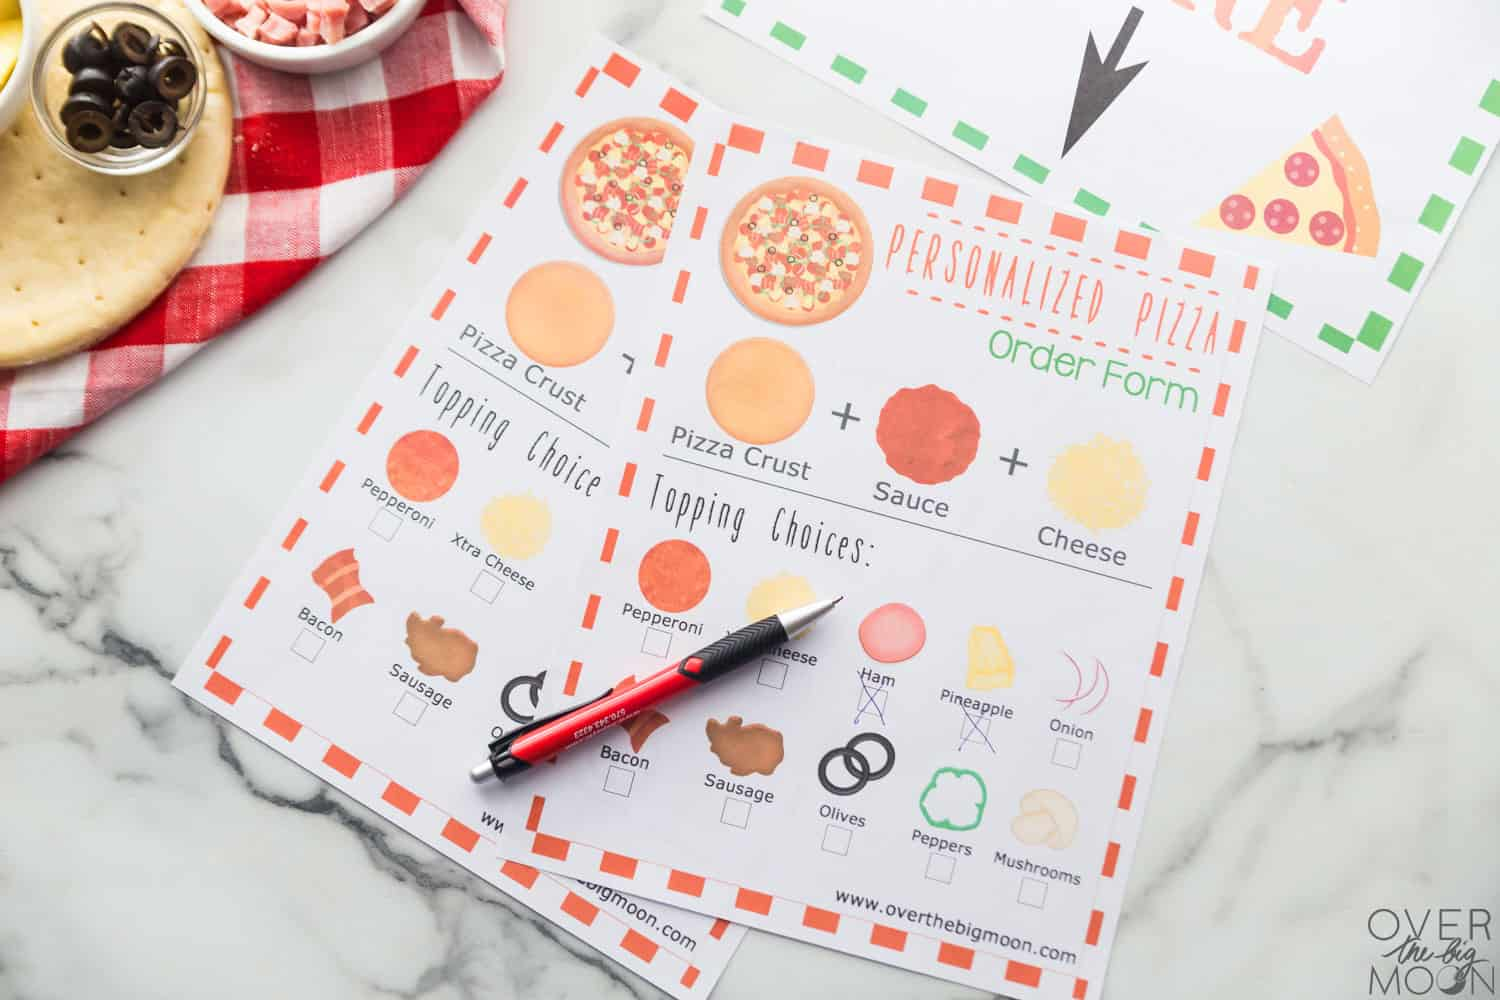 Printed Pizza order forms laying on a counter top with a pen and pizza supplies around them.